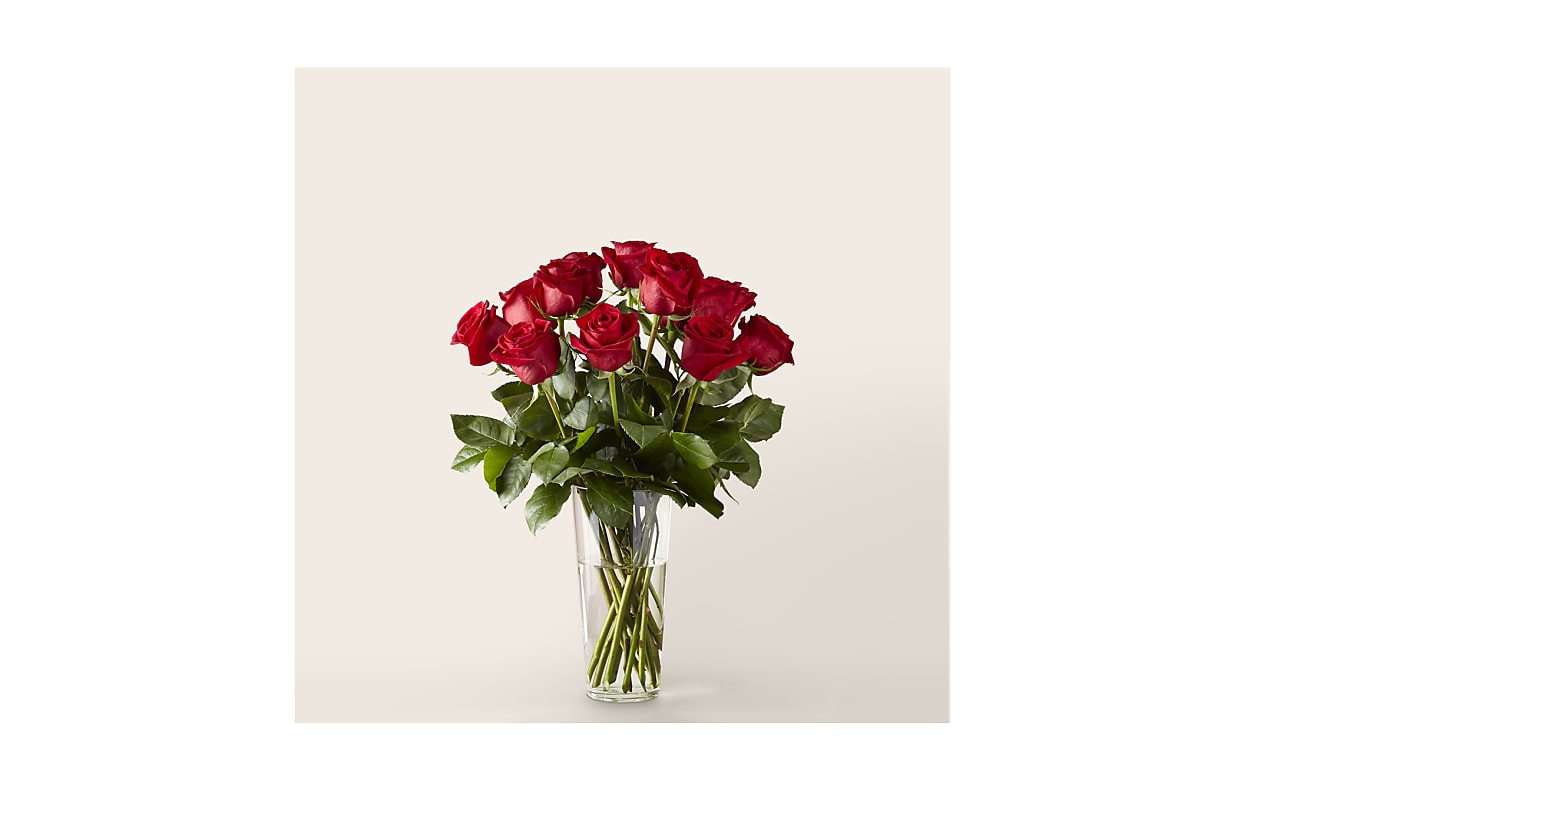 Long Stem Red Rose Bouquet – 12 Red Roses - Image 1 Of 3